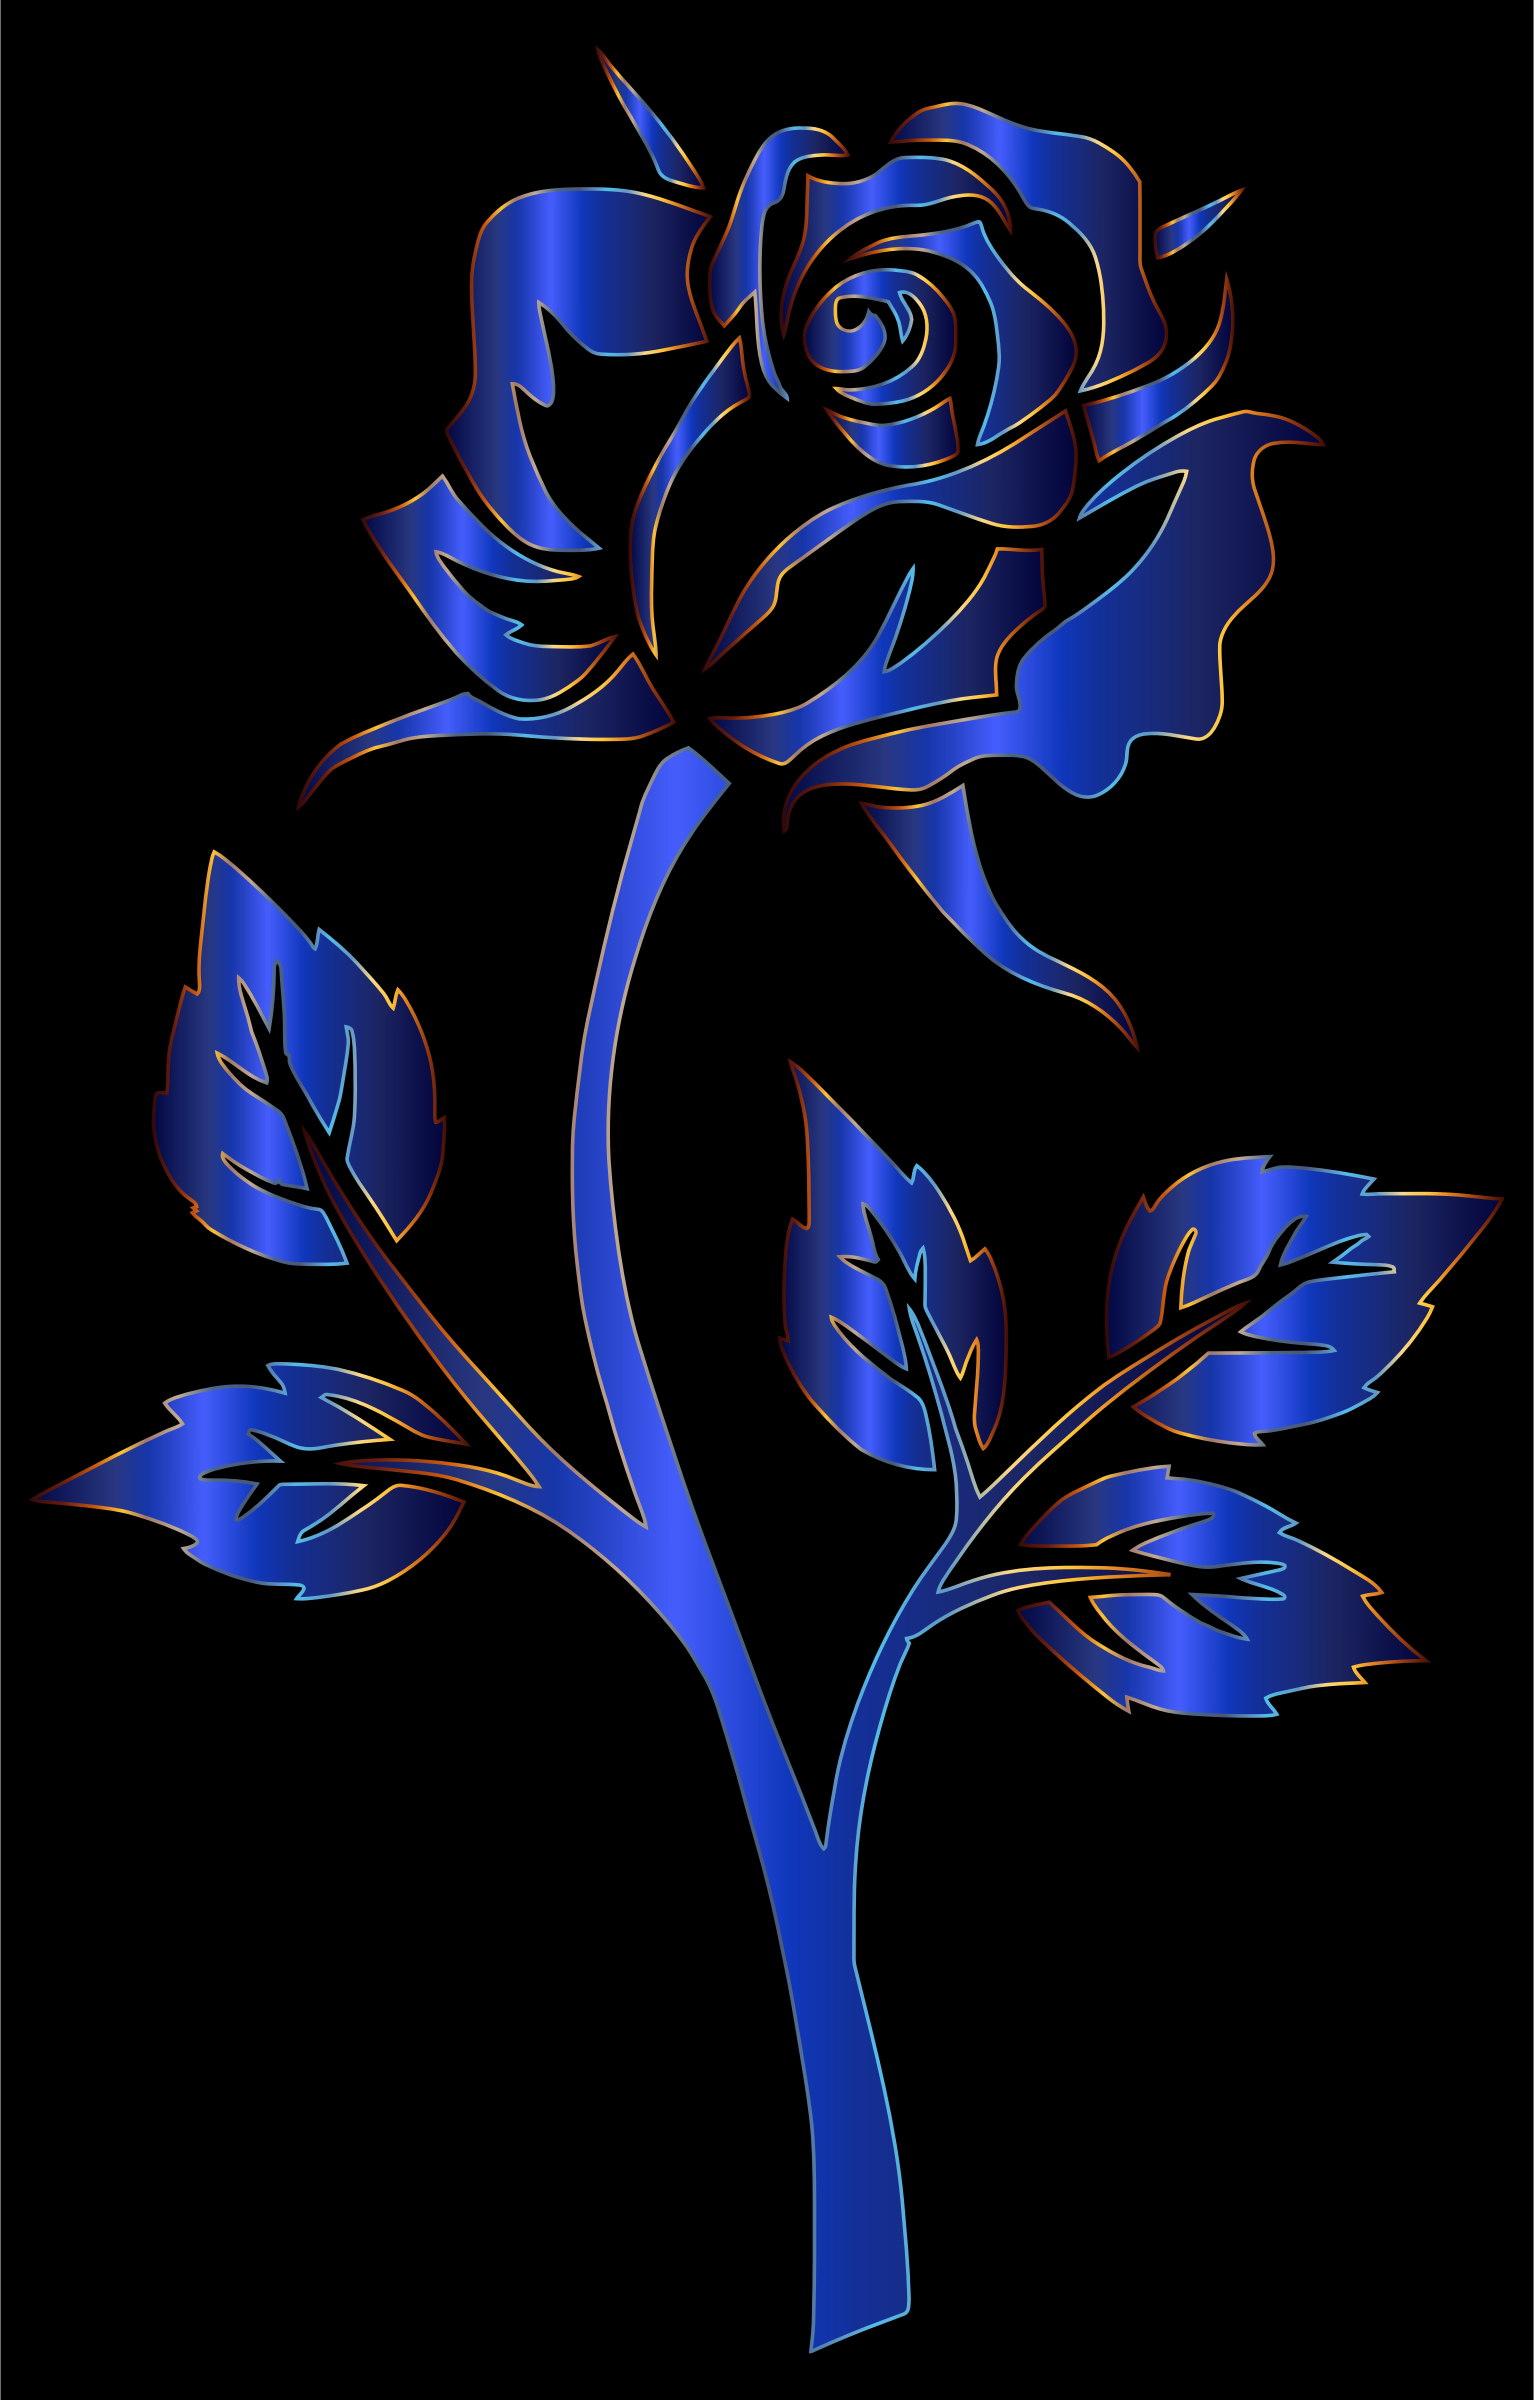 Azure Rose Silhouette by GDJ